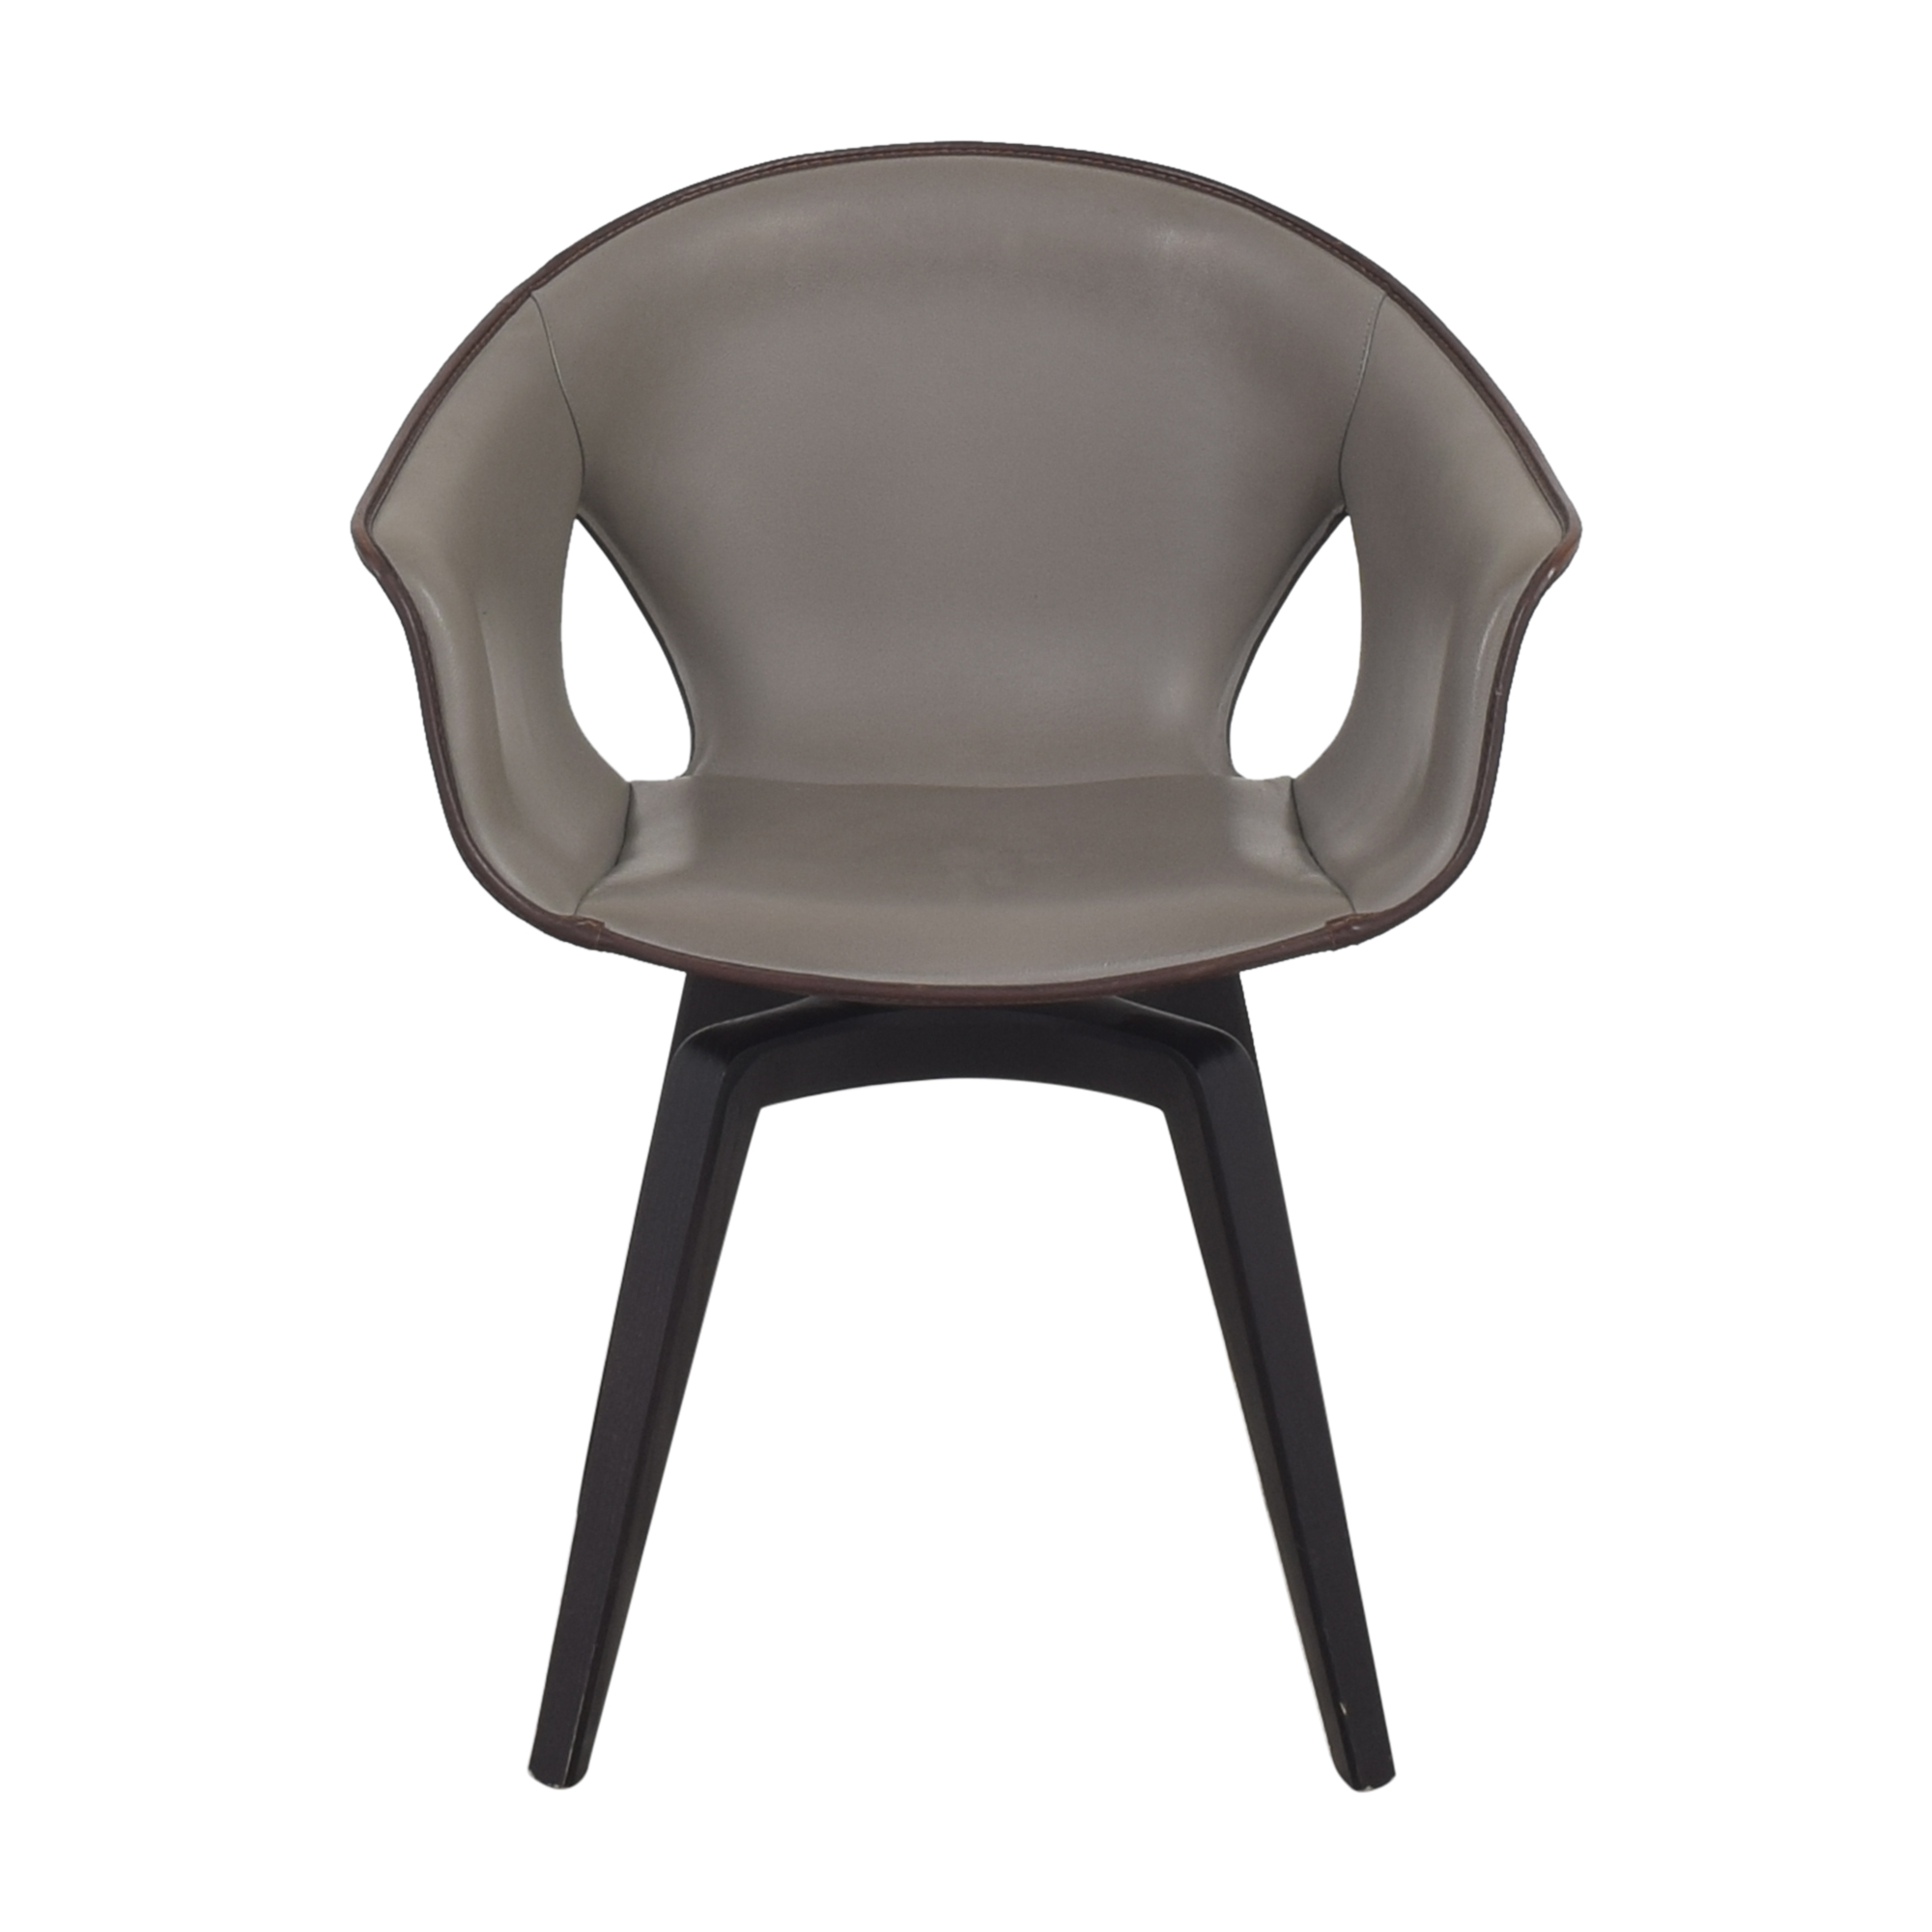 Poltrona Frau Poltrona Frau Ginger Side Chair for sale